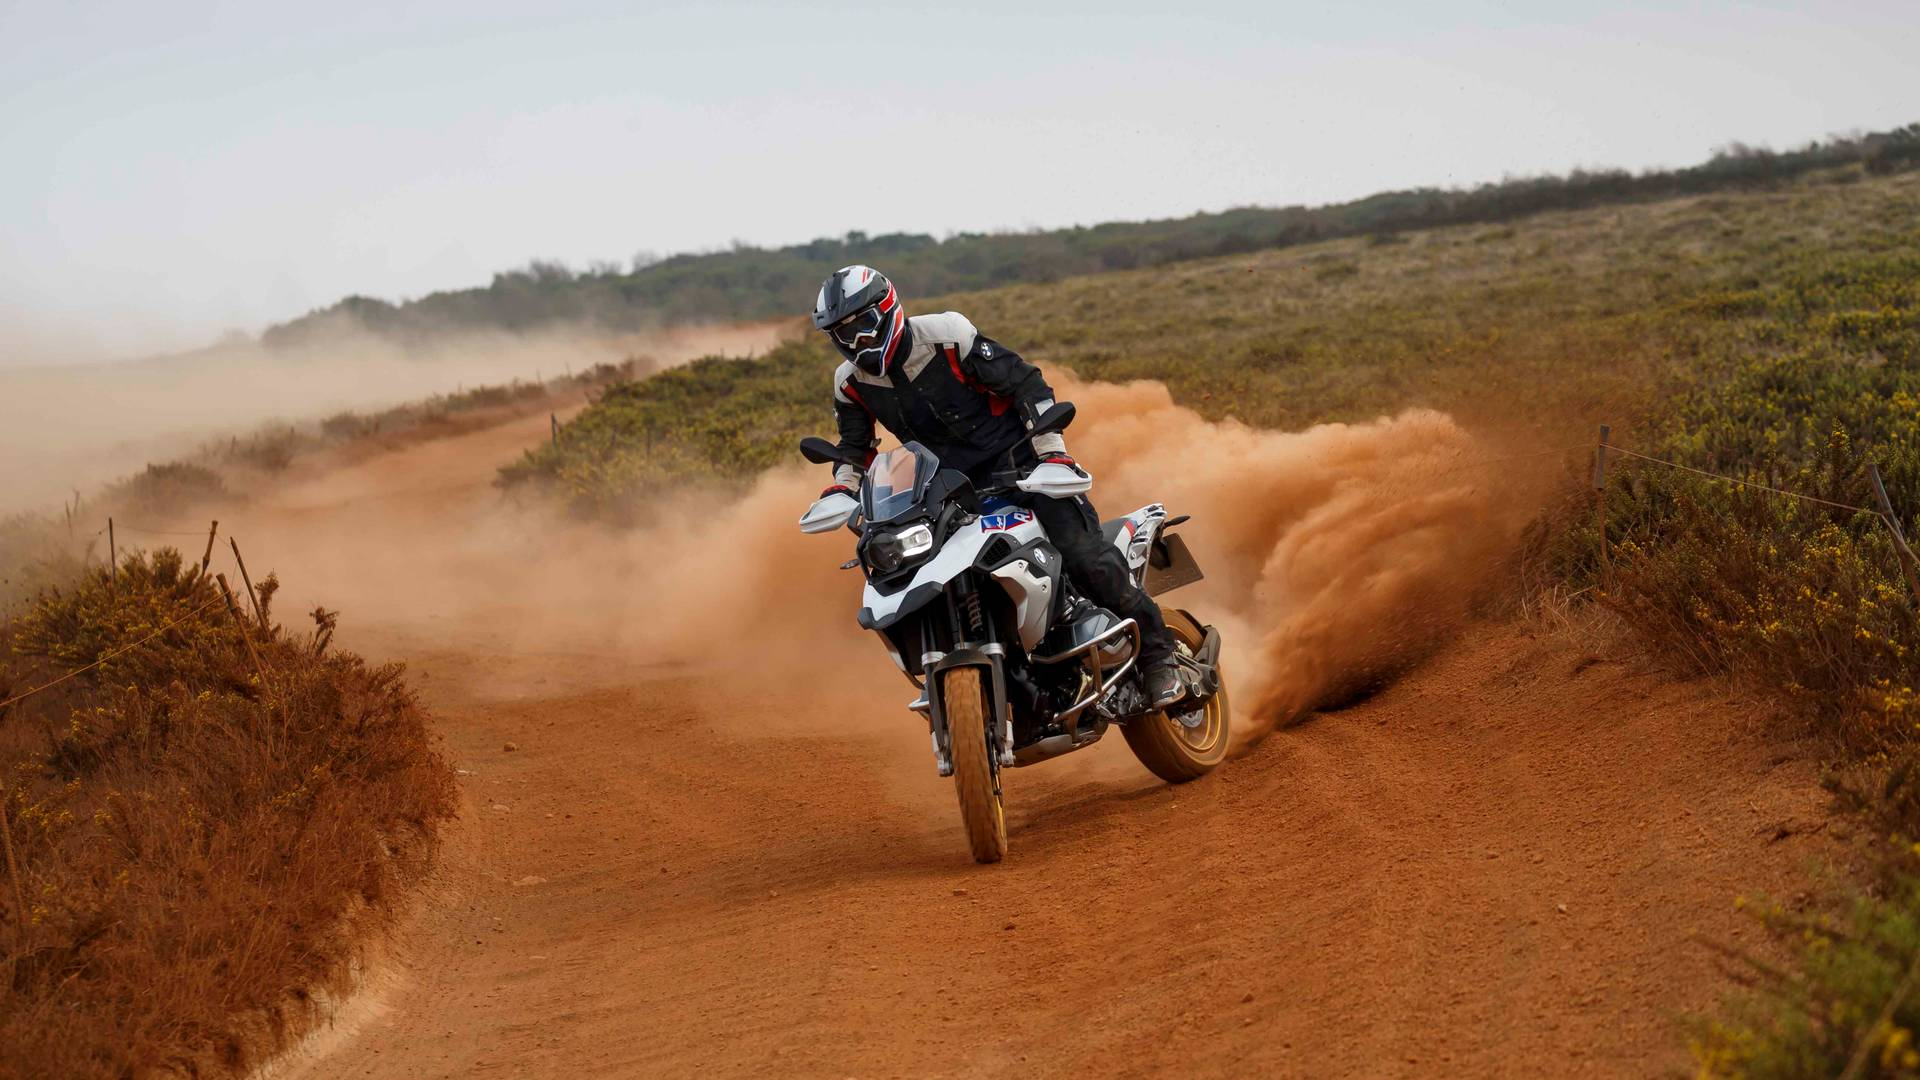 BMW R1250GS Wallpapers - Wallpaper Cave